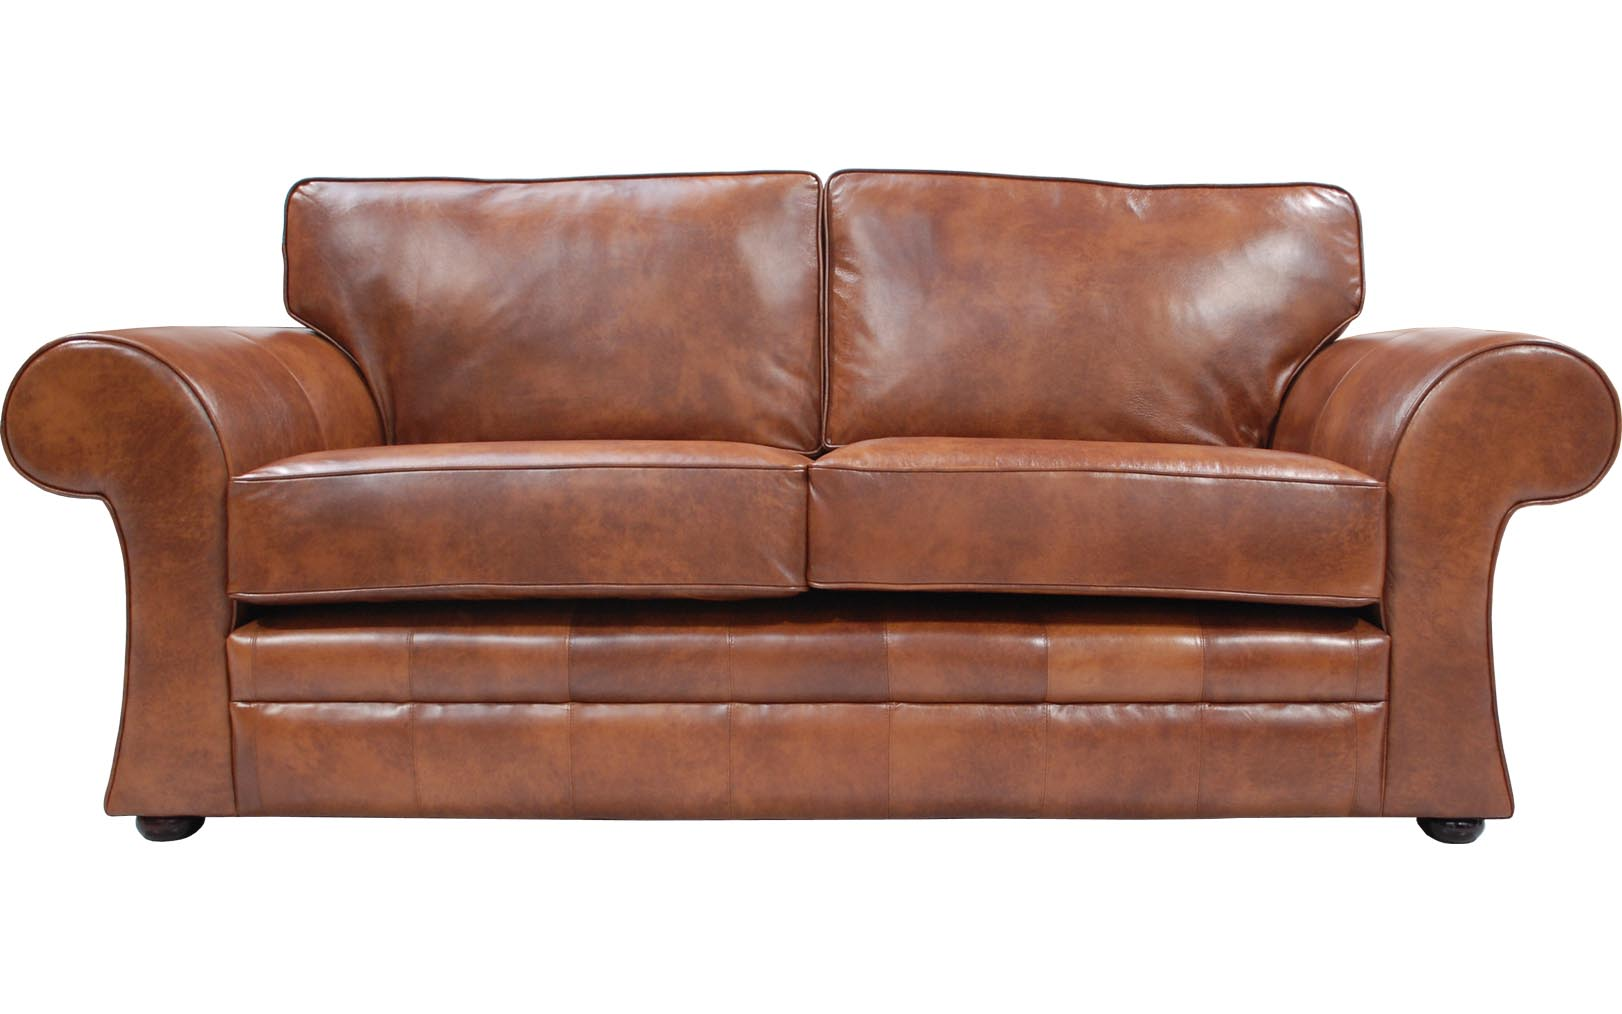 Brown Real Leather Couch Cavan Real Leather Sofa Bed